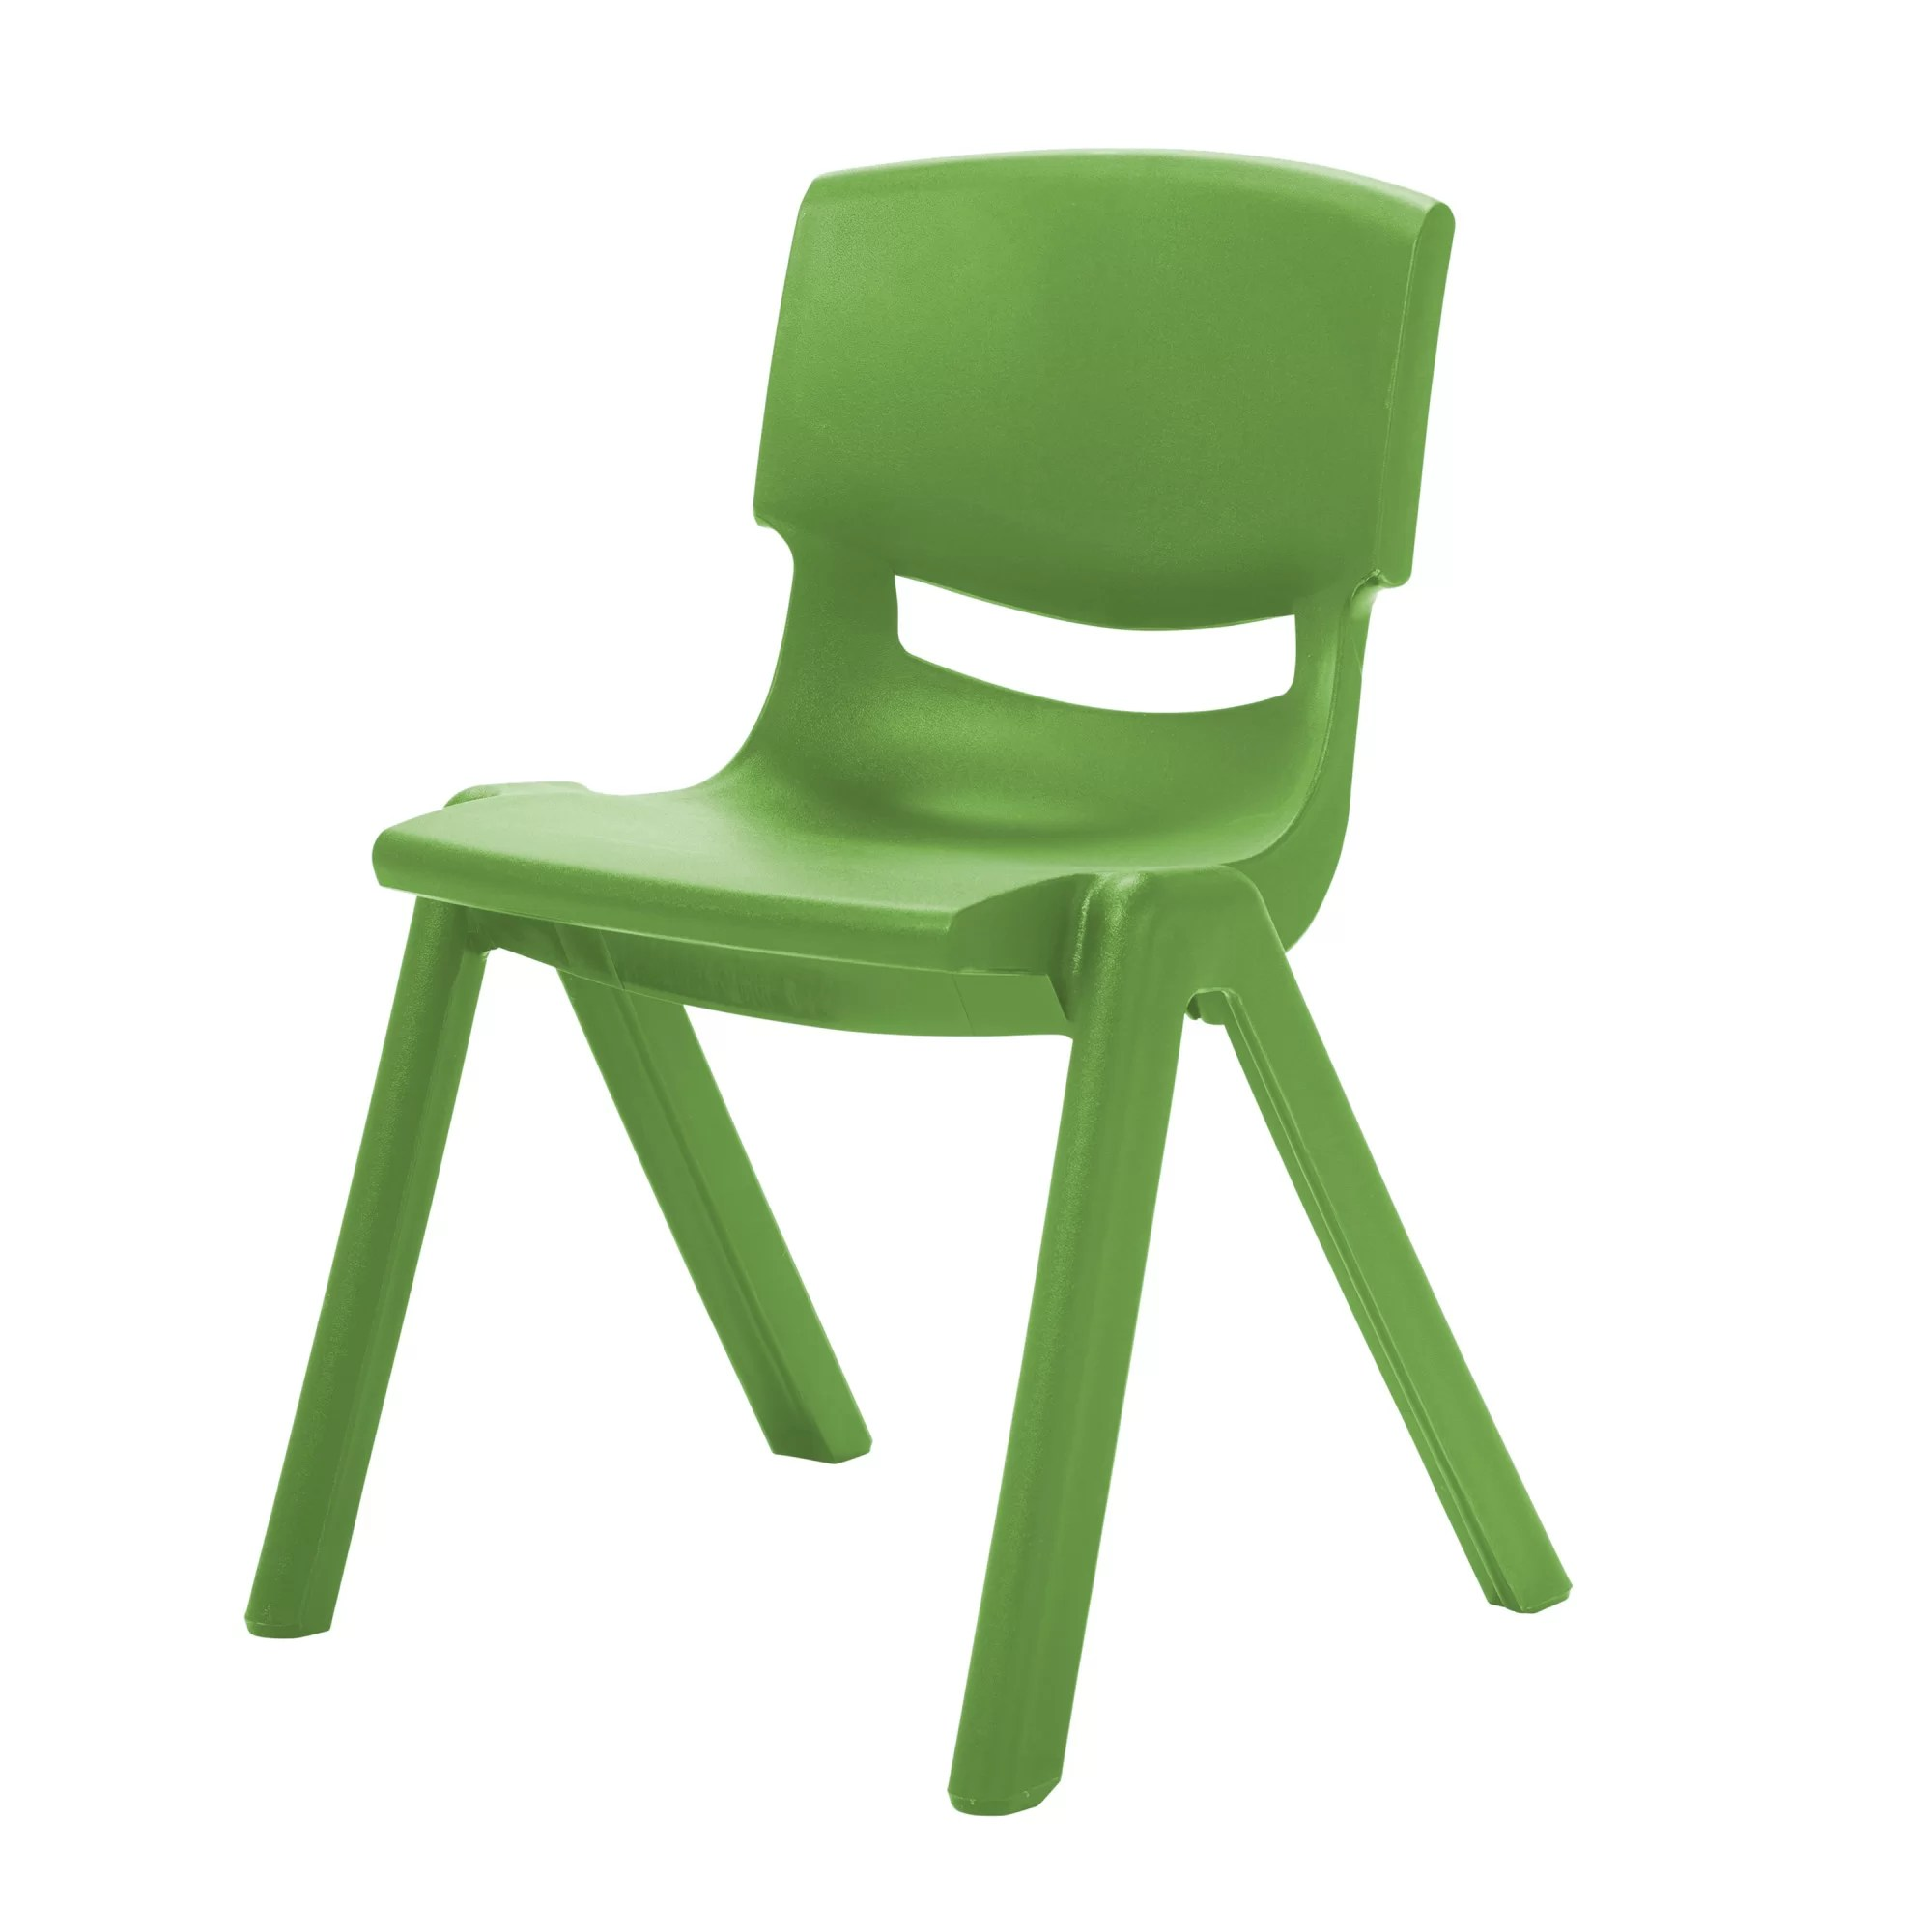 Resin Chairs 10 Plastic Classroom Chair